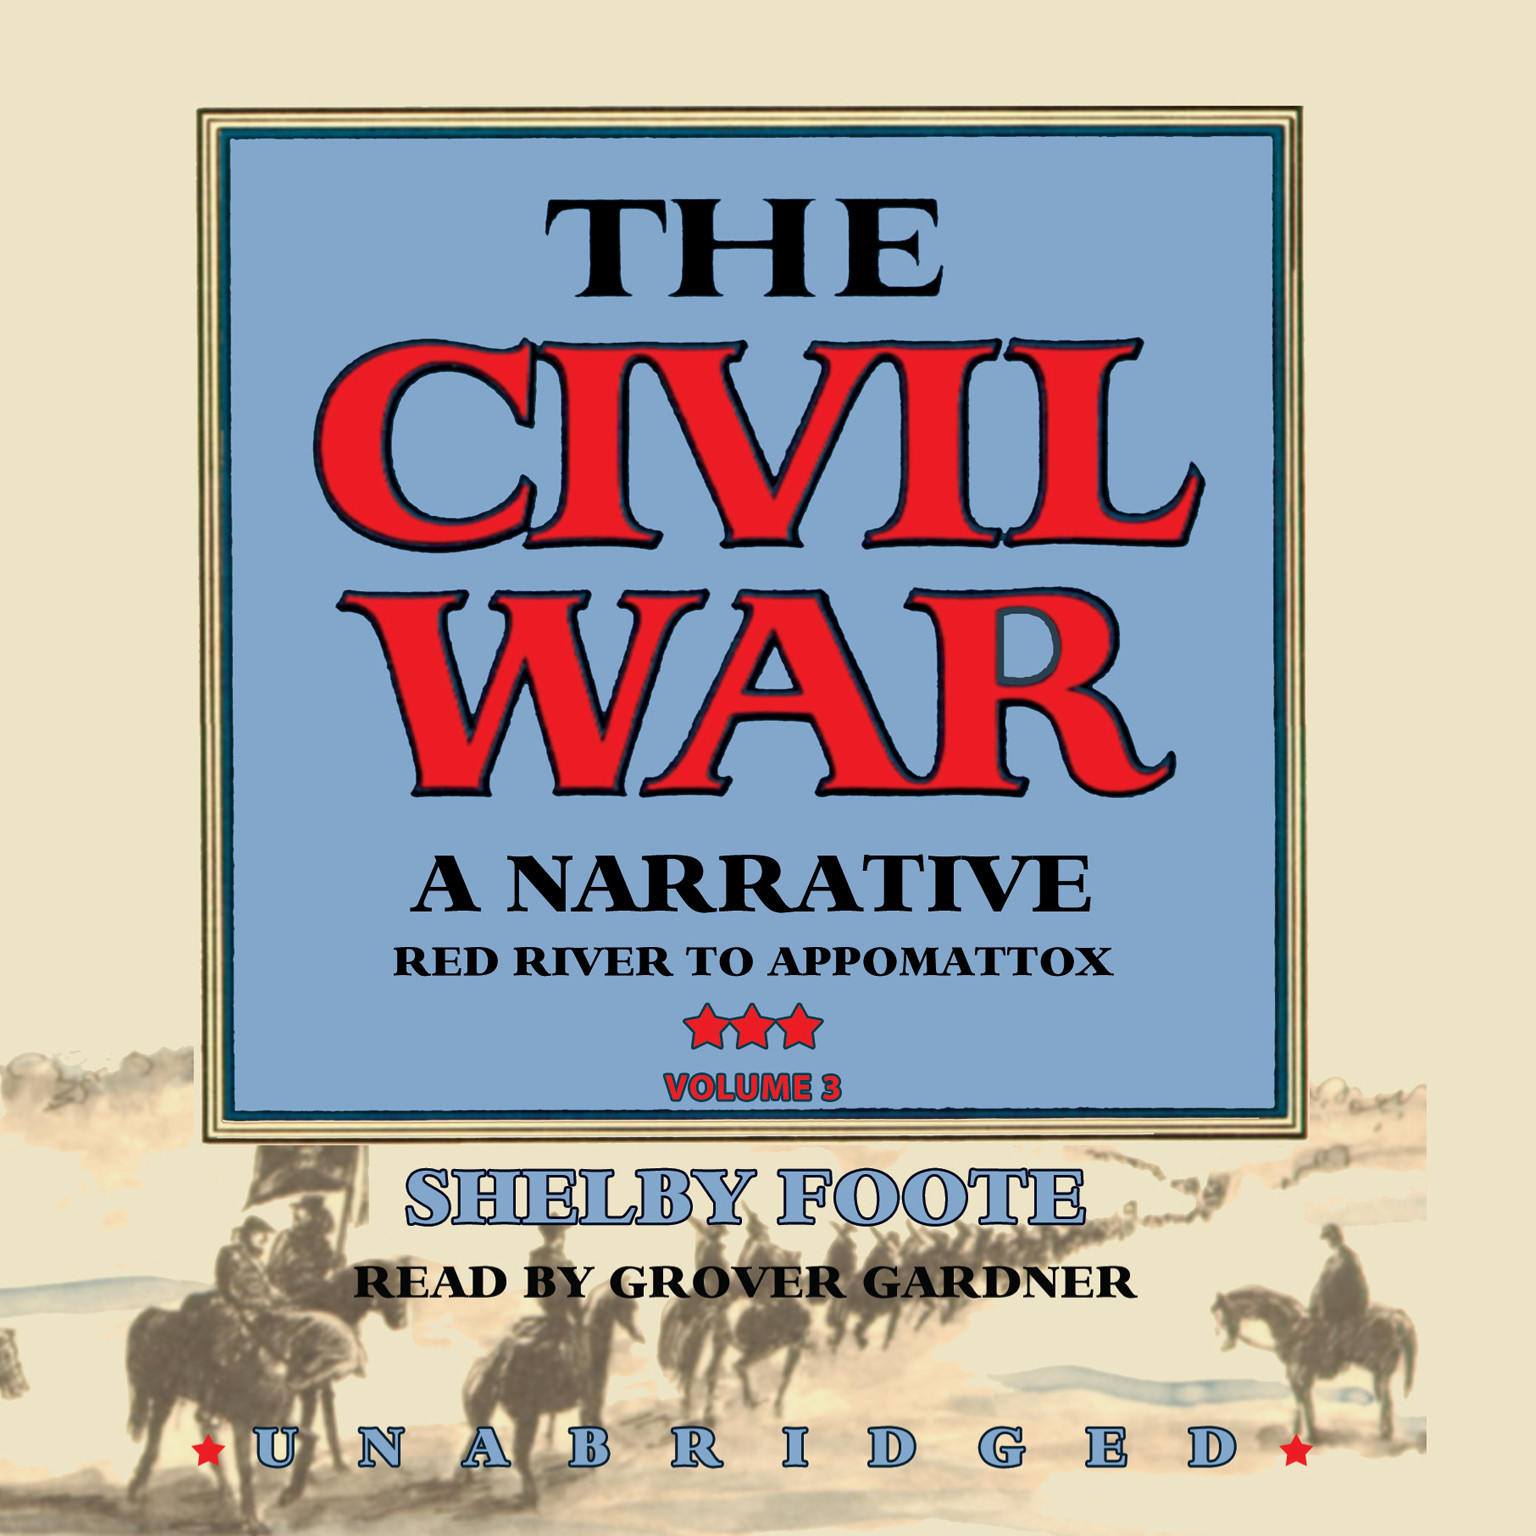 The Civil War Vol 3 Red River To Appomattox By Shelby Foote